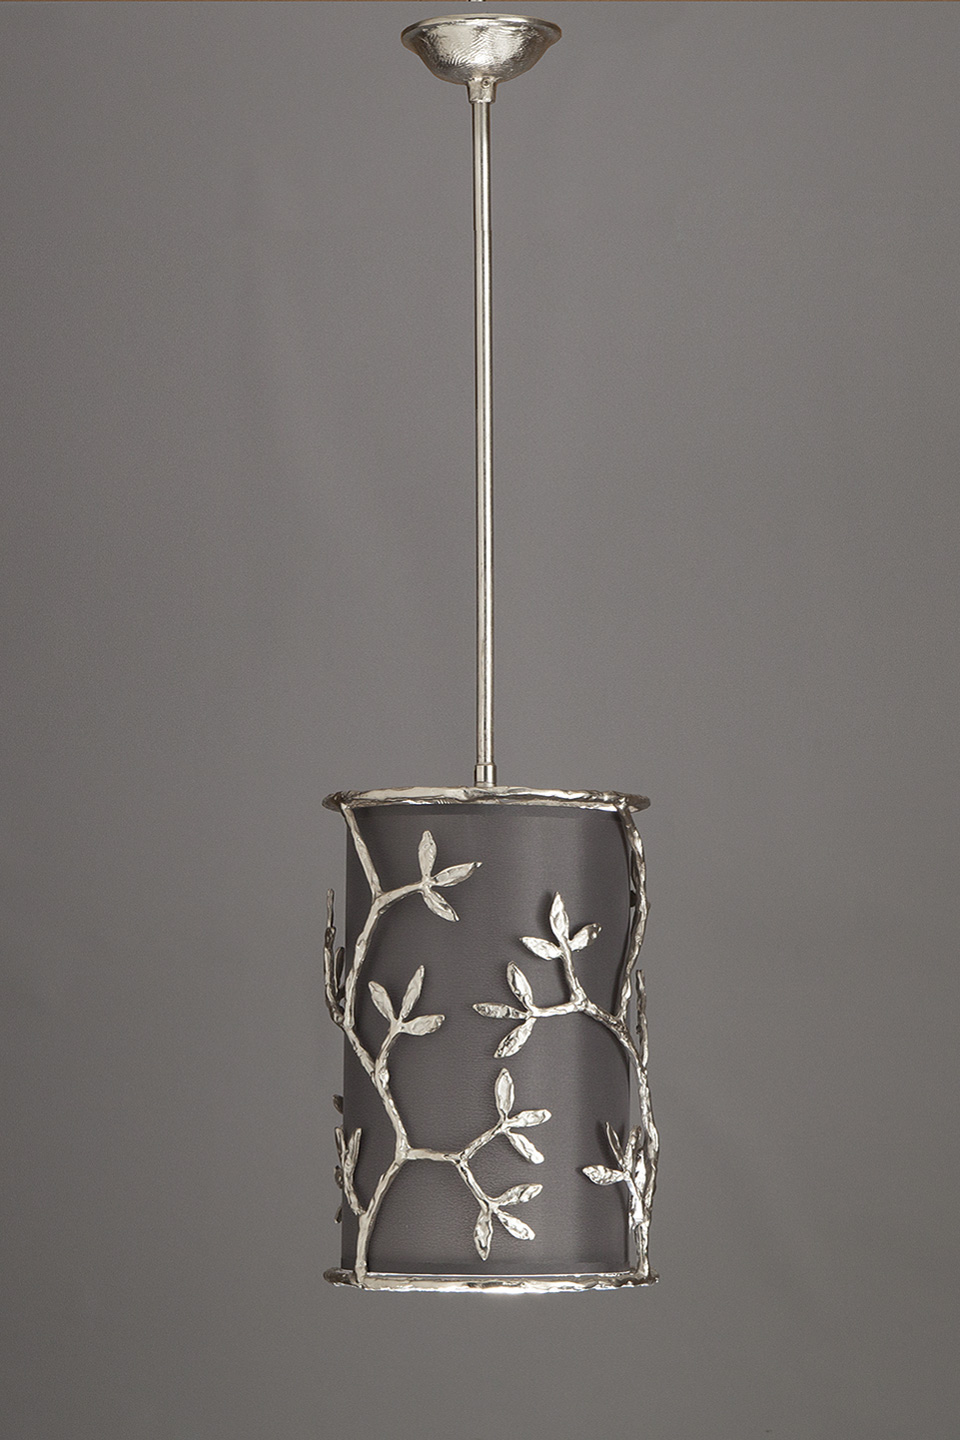 Satin Nickel Cylindrical Pendant with Smoke Gray Shade Ombelle. Objet insolite.